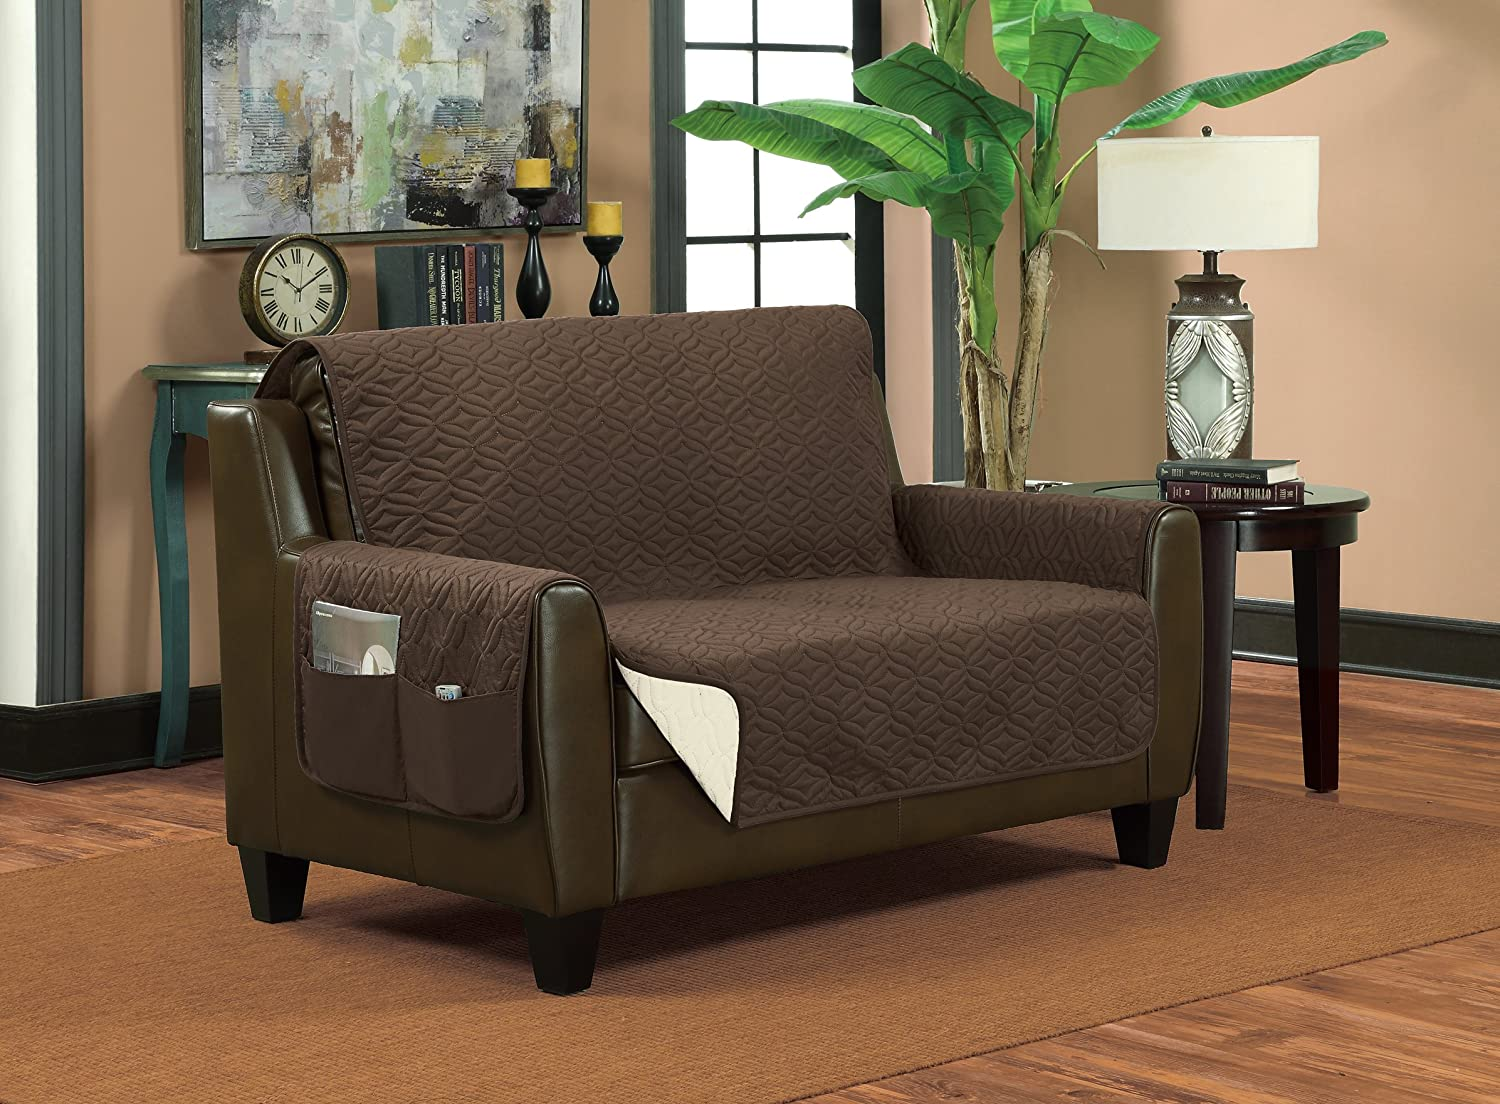 Bella Kline Reversible Sofa Furniture Protector, with 2 Storage Pockets - Mocha/Tan